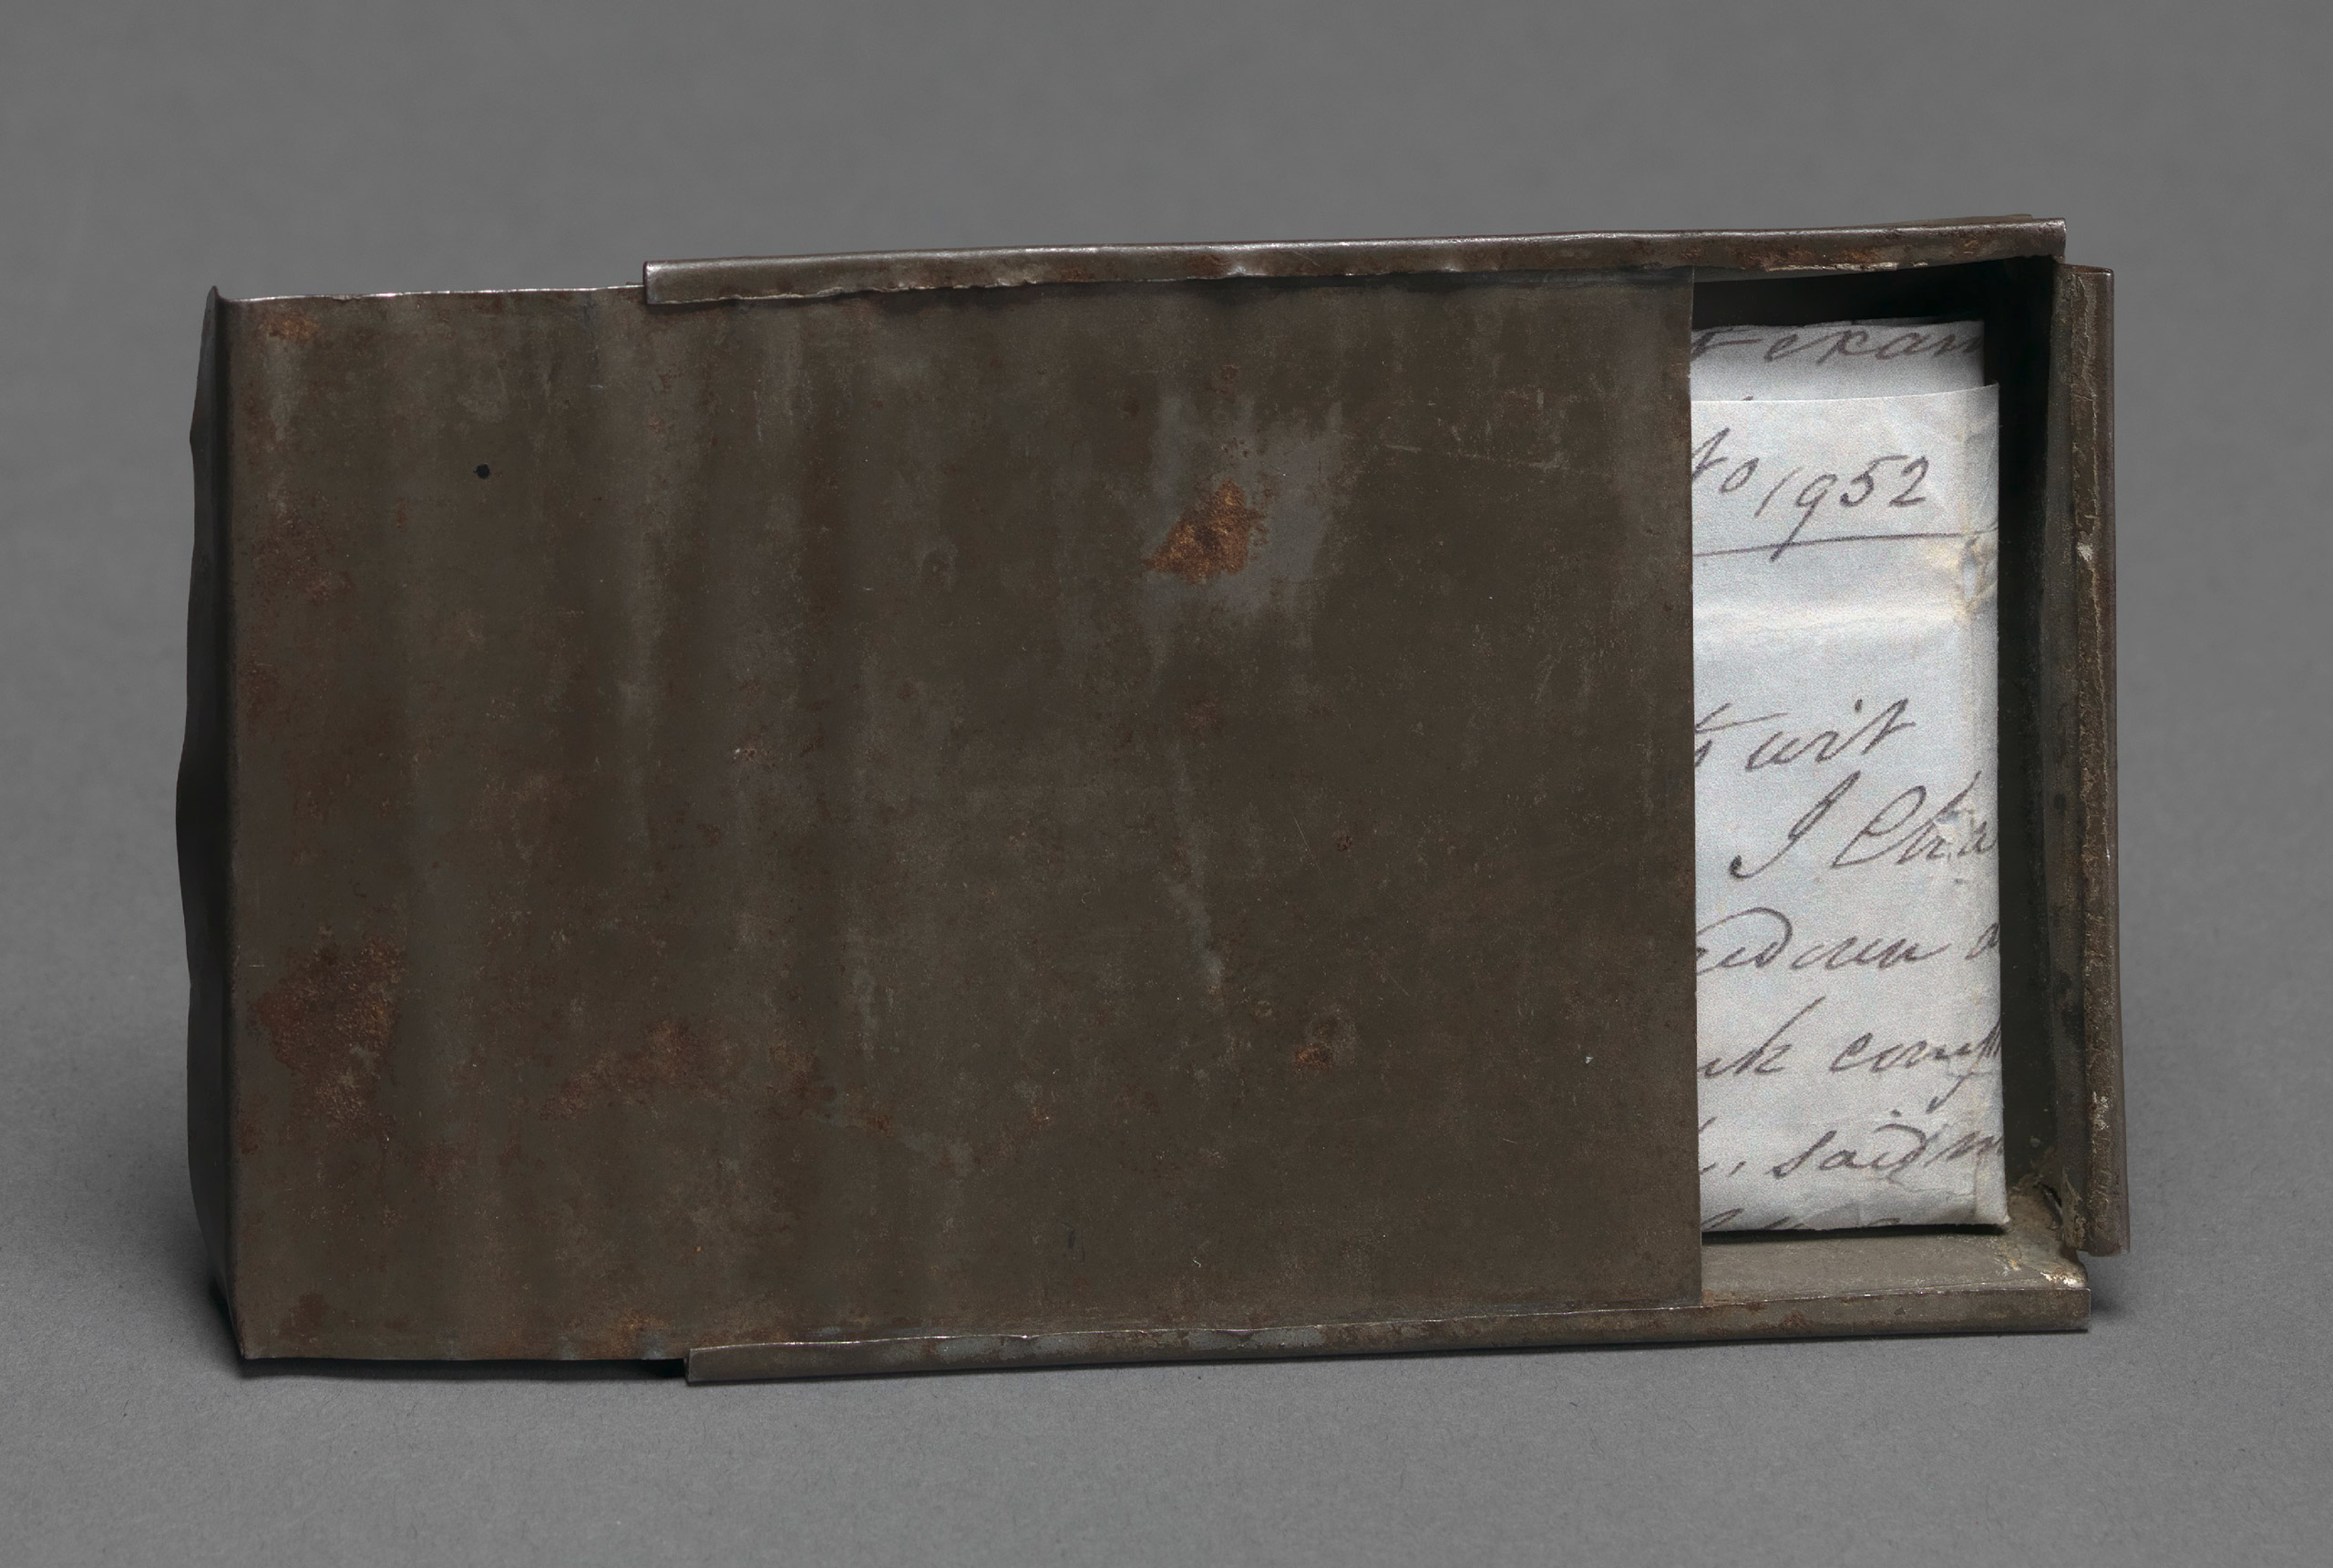 Tin box handmade and carried by Joseph Trammell to hold freedom papers, 1852.